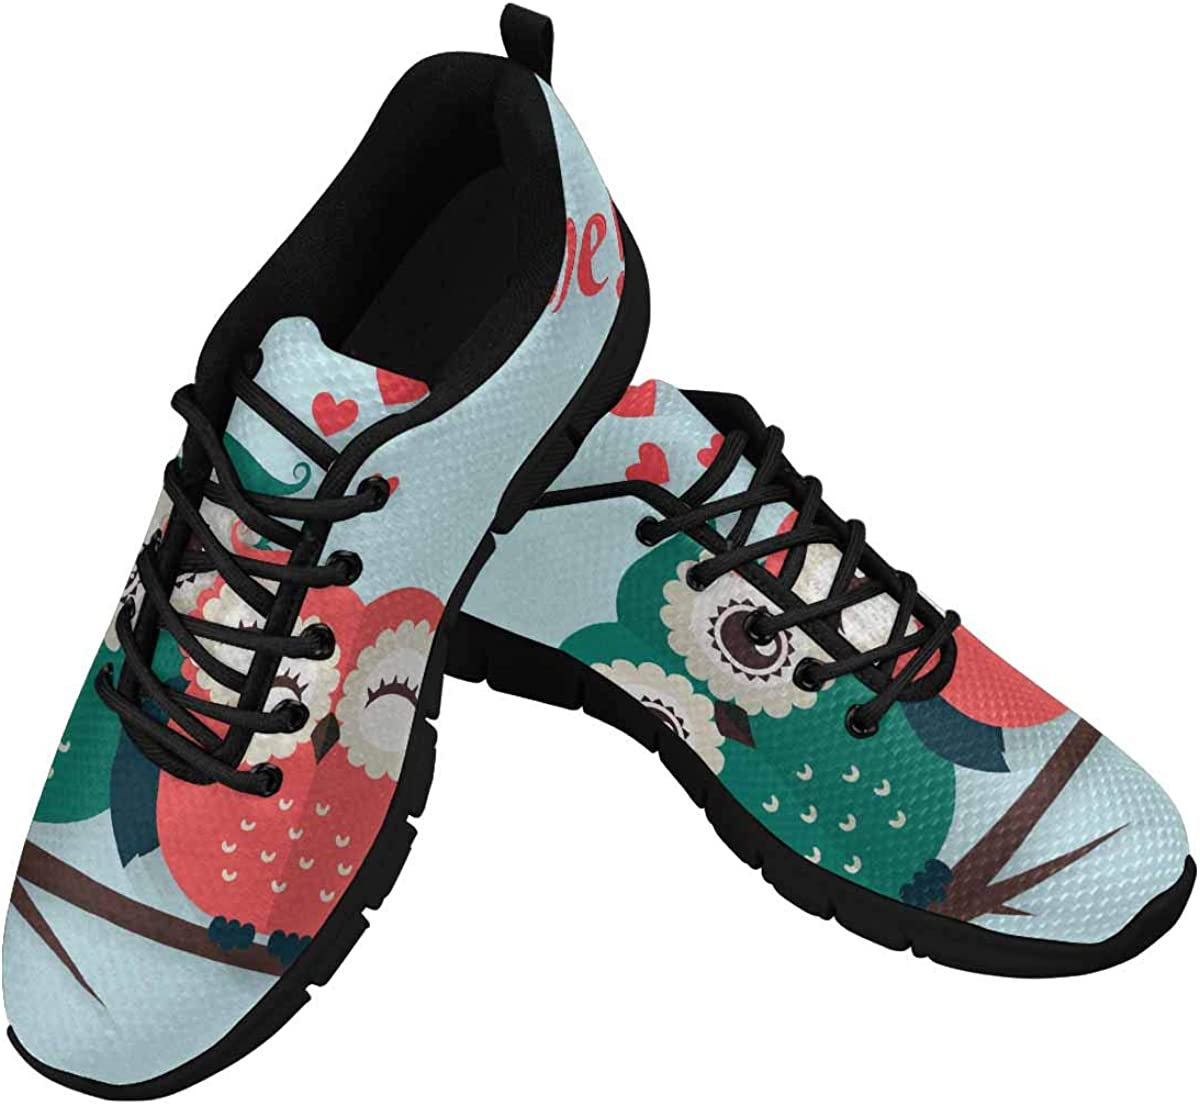 INTERESTPRINT Owl Valentine's Day Women's Running Shoes Mesh Breathable Sports Casual Shoes